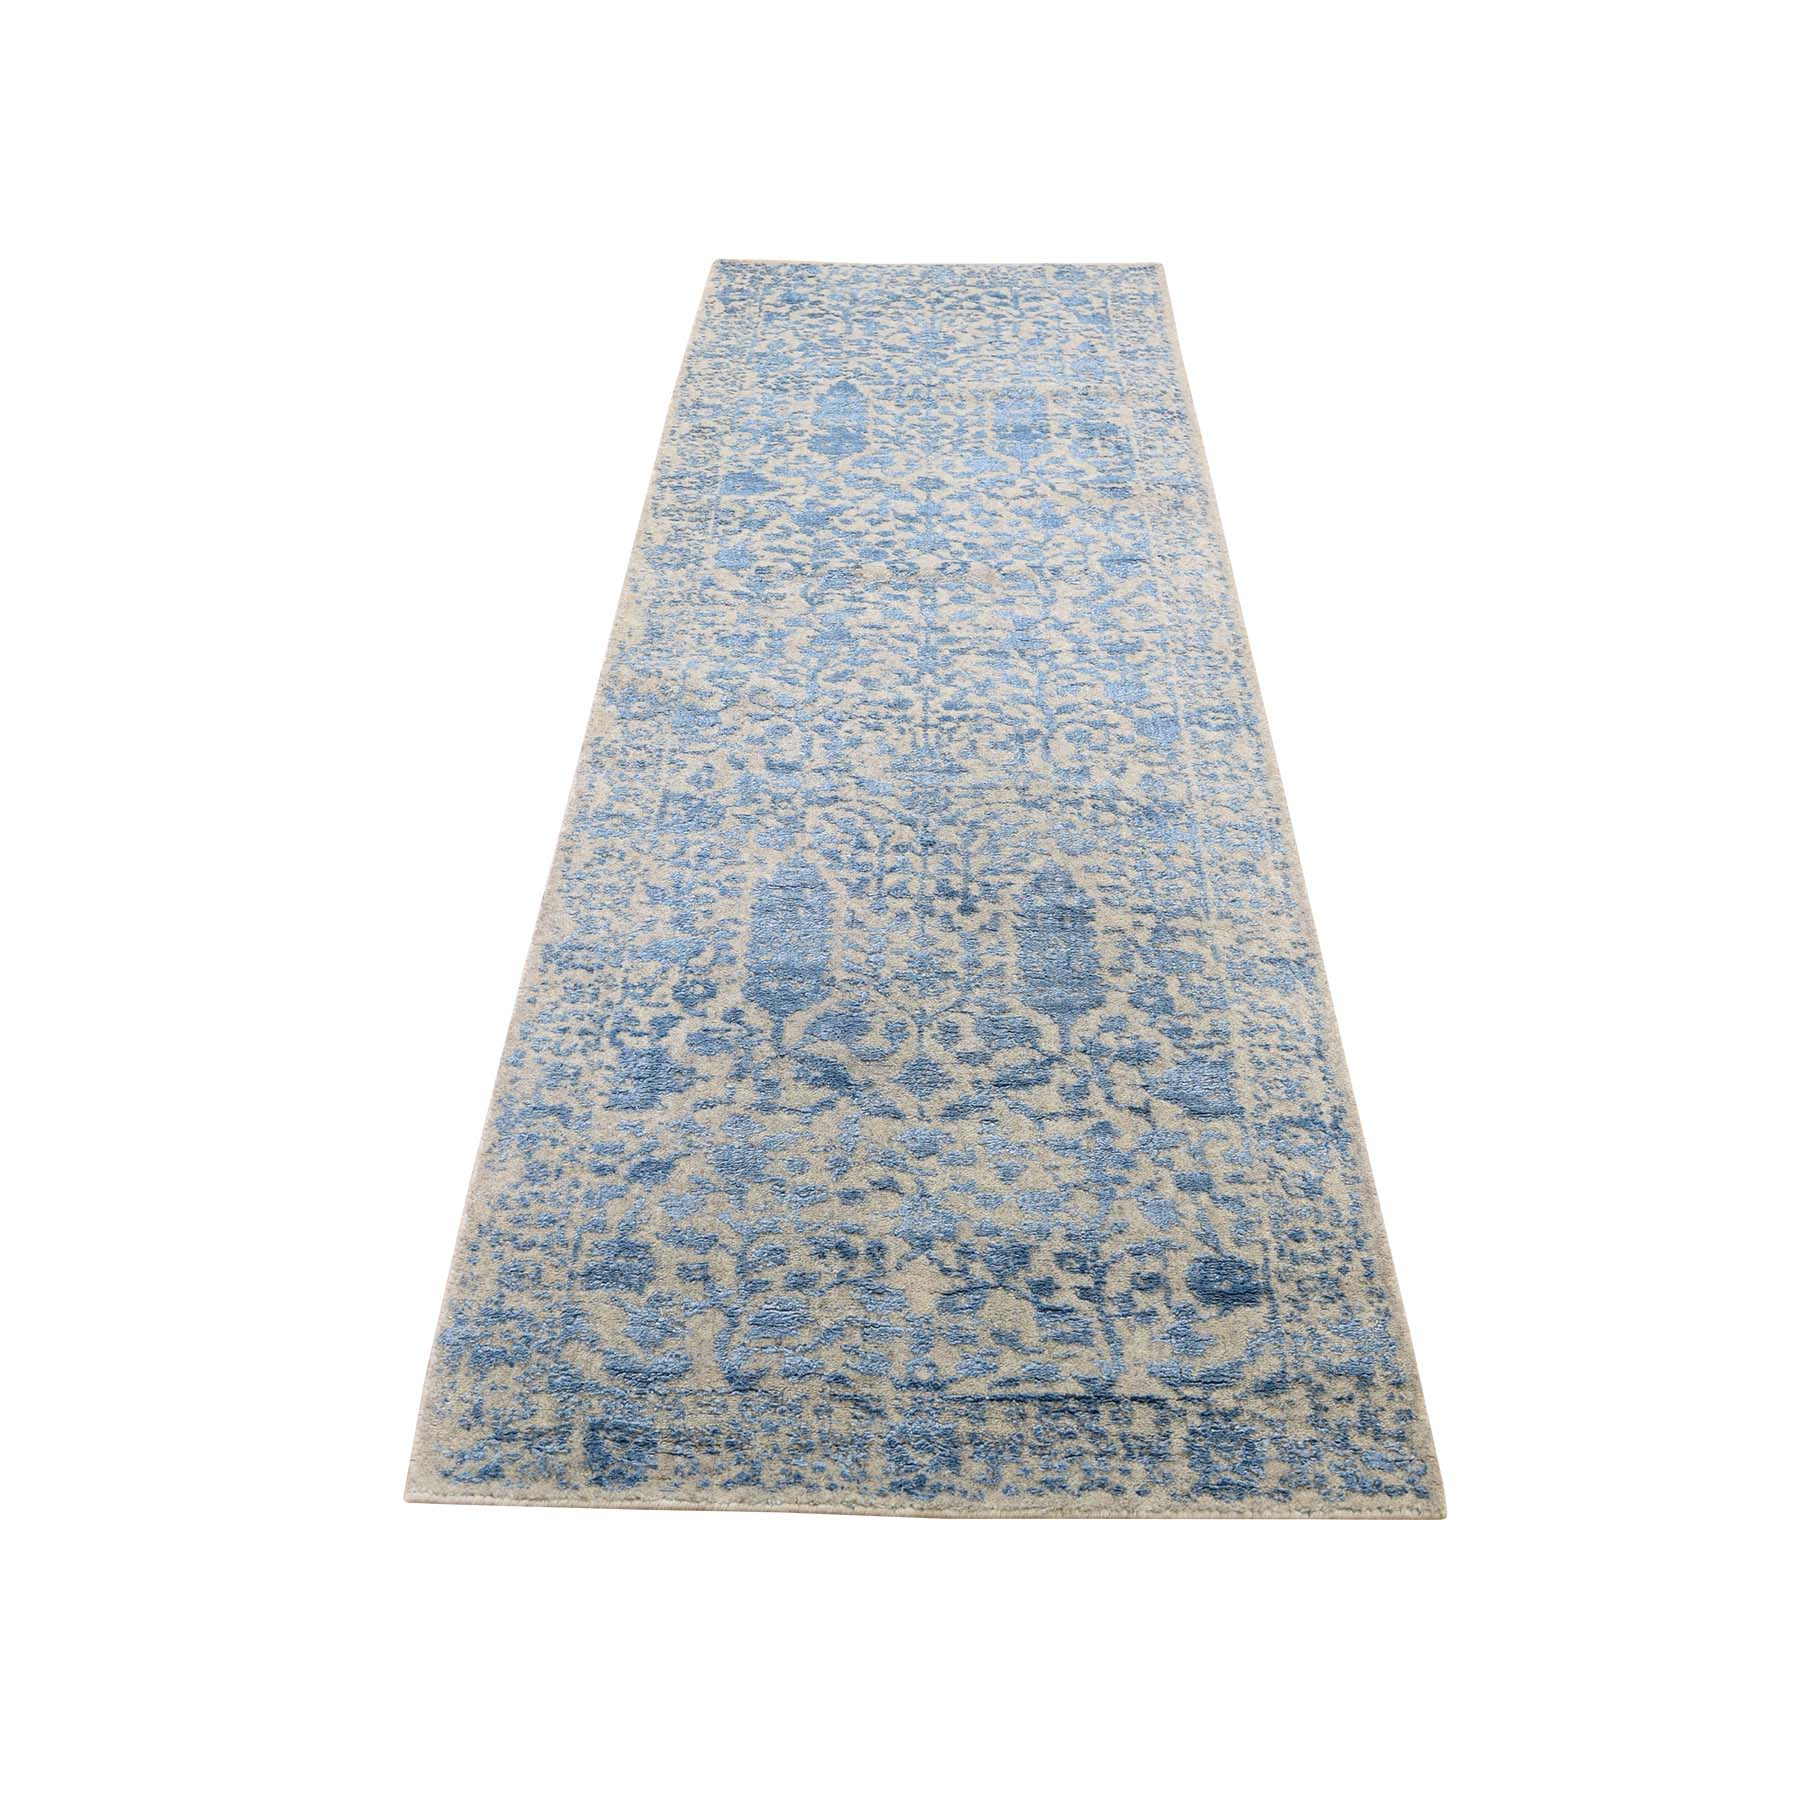 "2'6""x10'1"" Jacquard Hand-Loomed Blue Broken Cypress Tree Design Silken Thick And Plush Runner Oriental Rug"